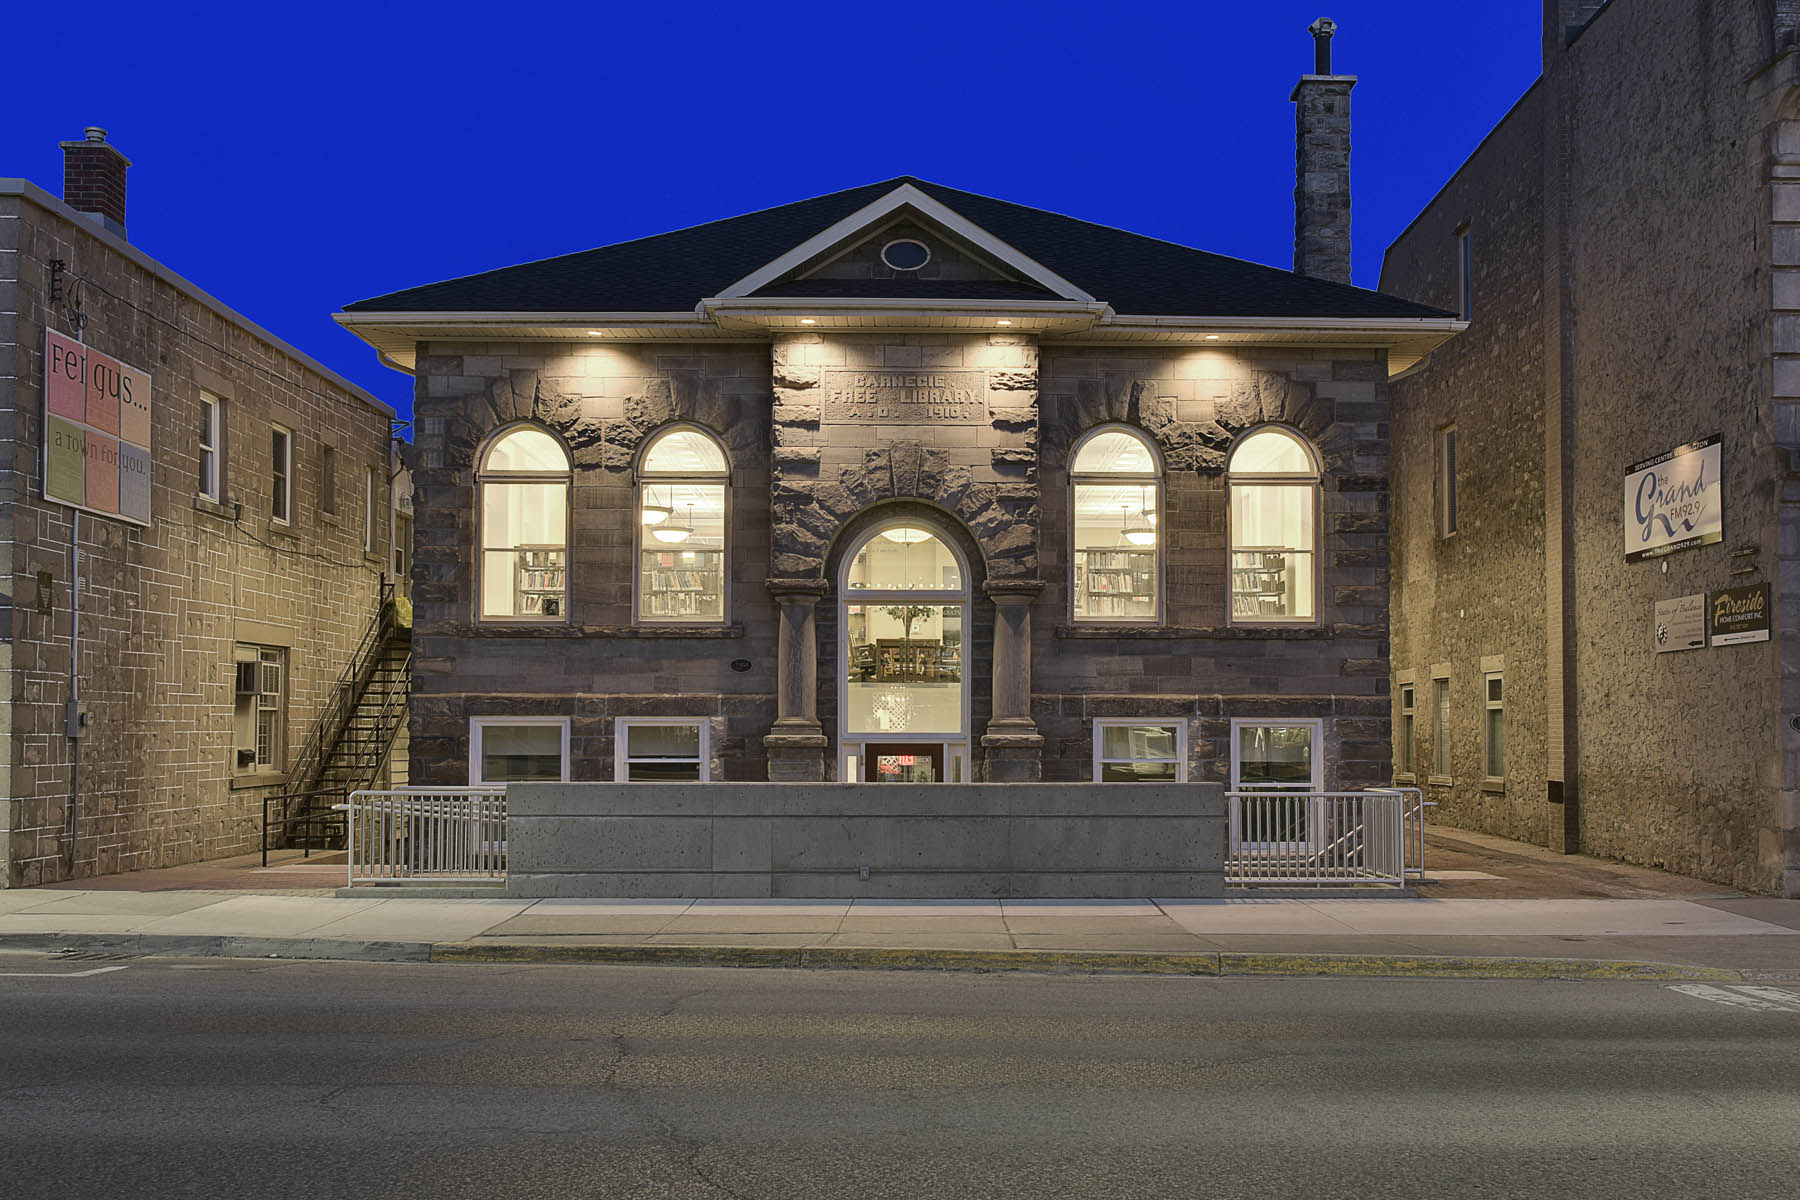 View of illuminated stone front façade from across the street at dusk featuring archway entrance and windows